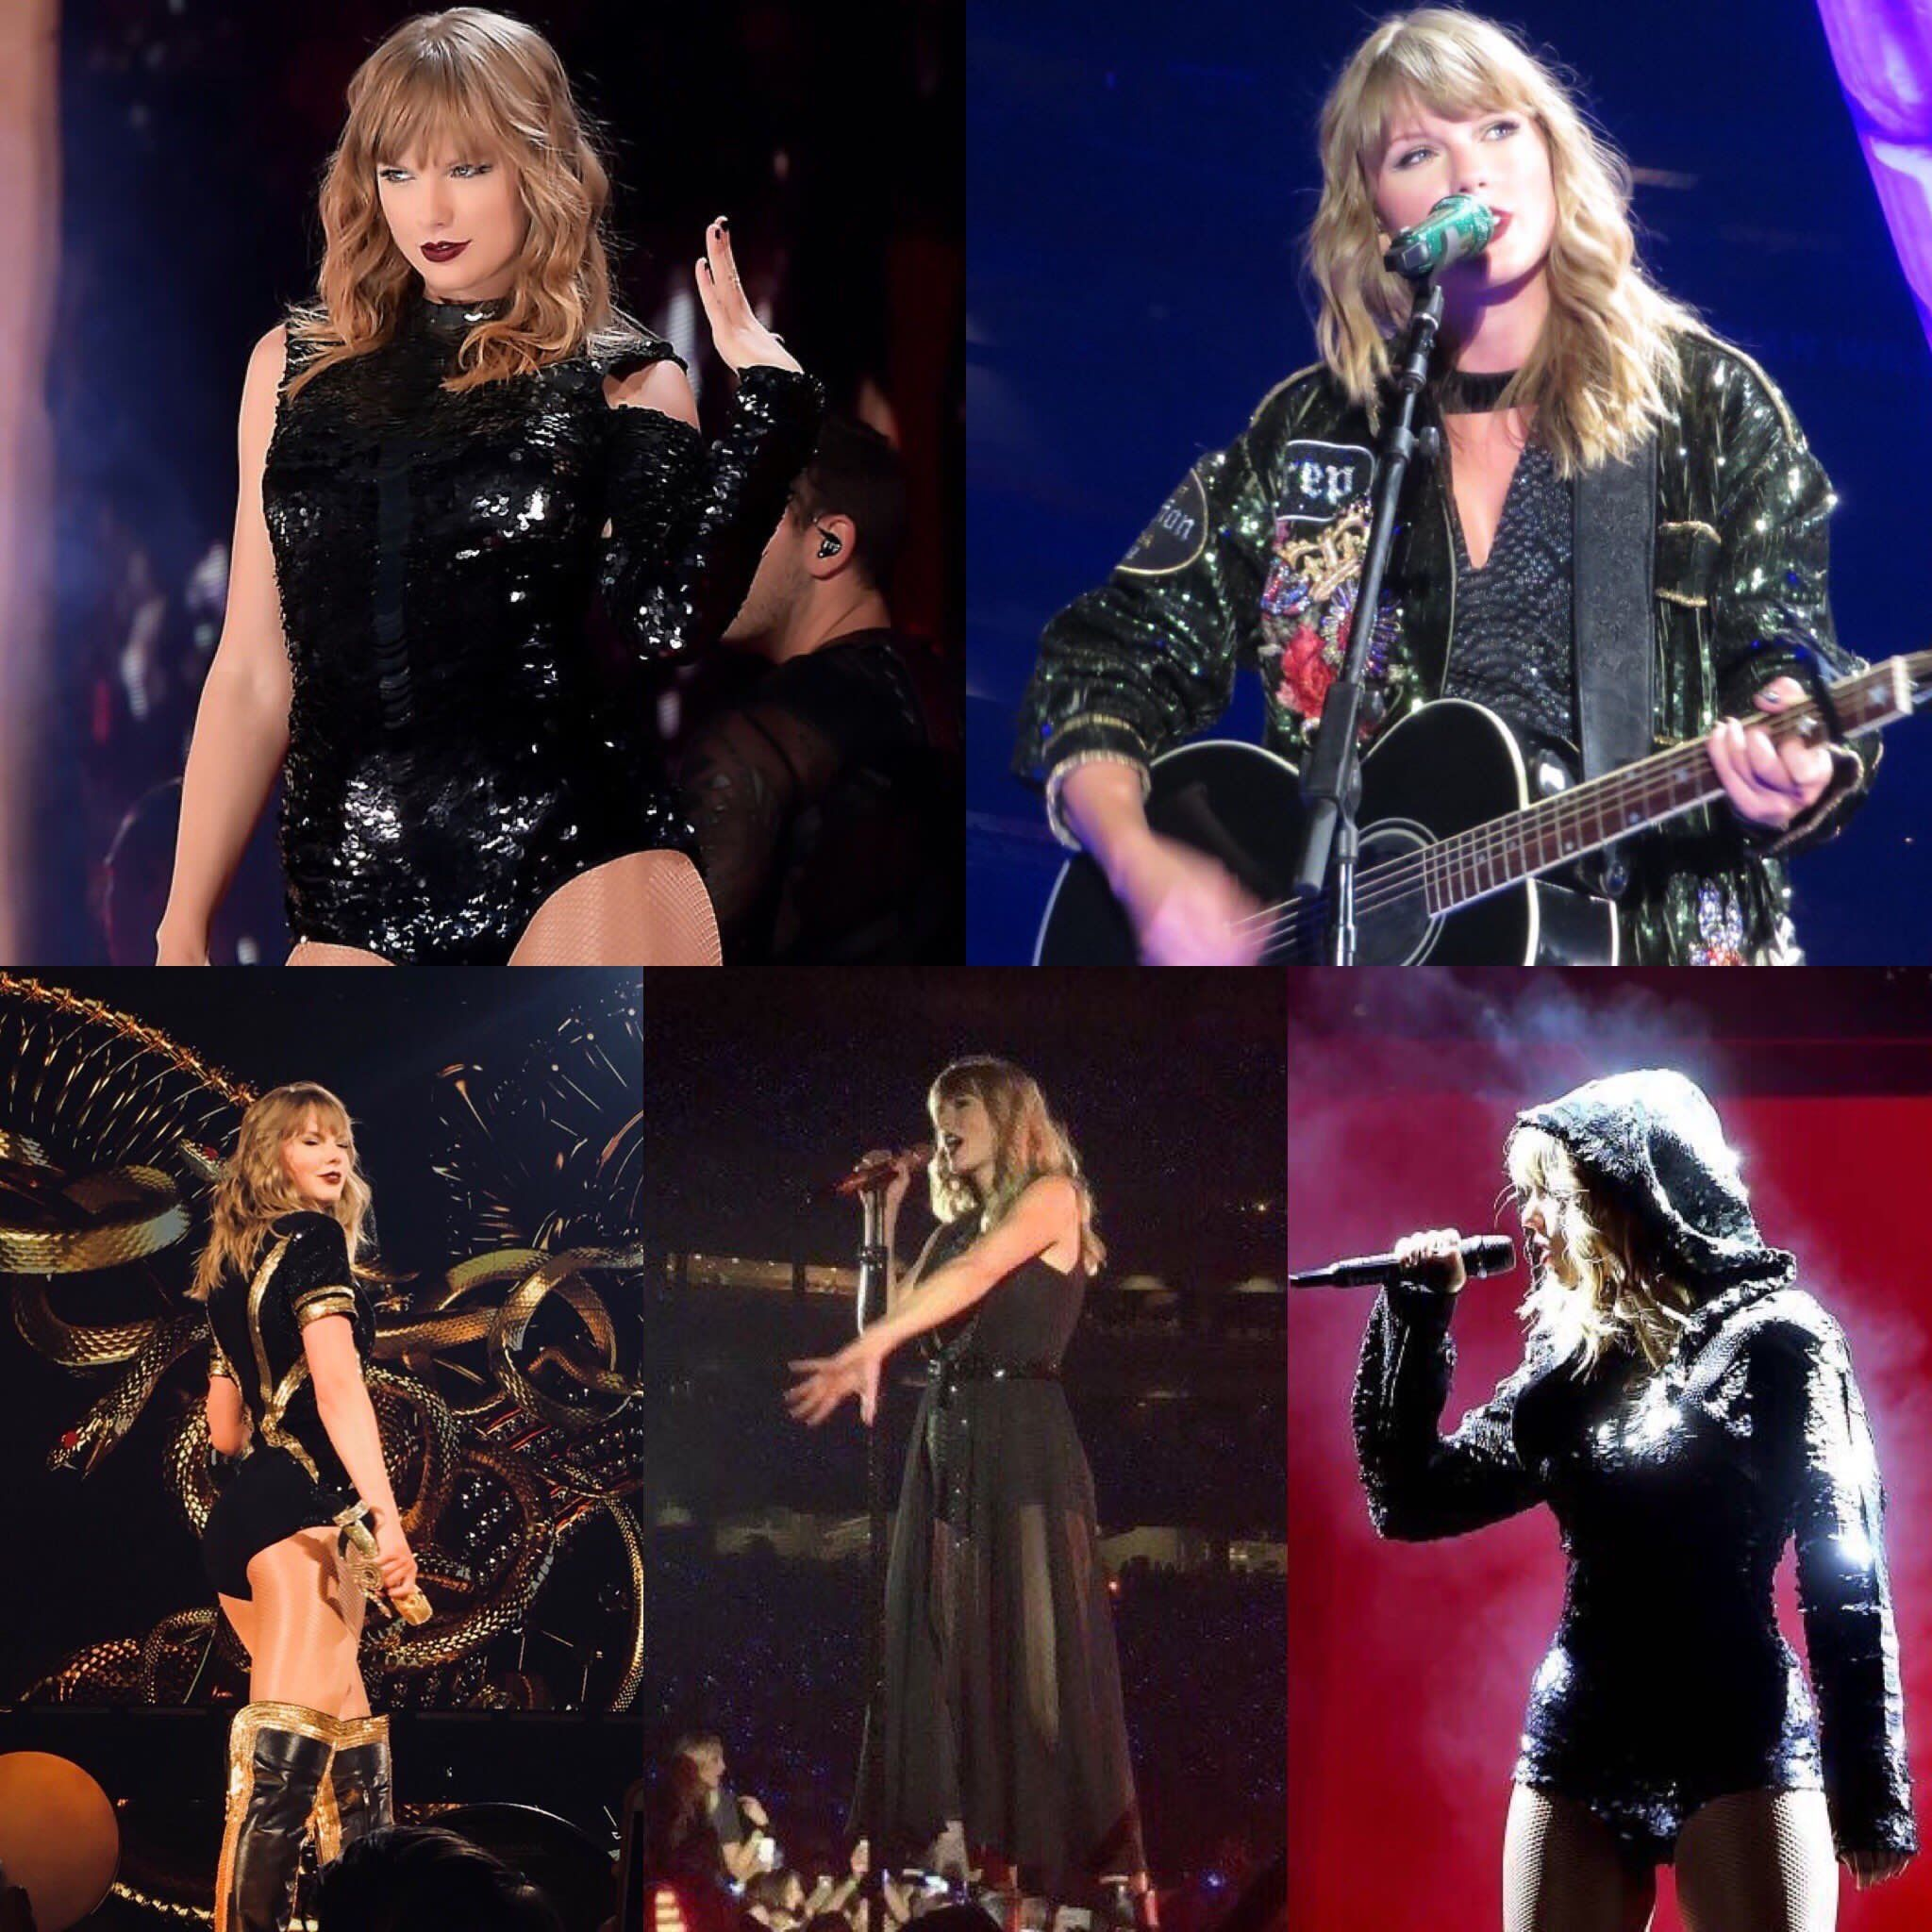 Some of Taylor's outfits on tour! #repTourGlendale